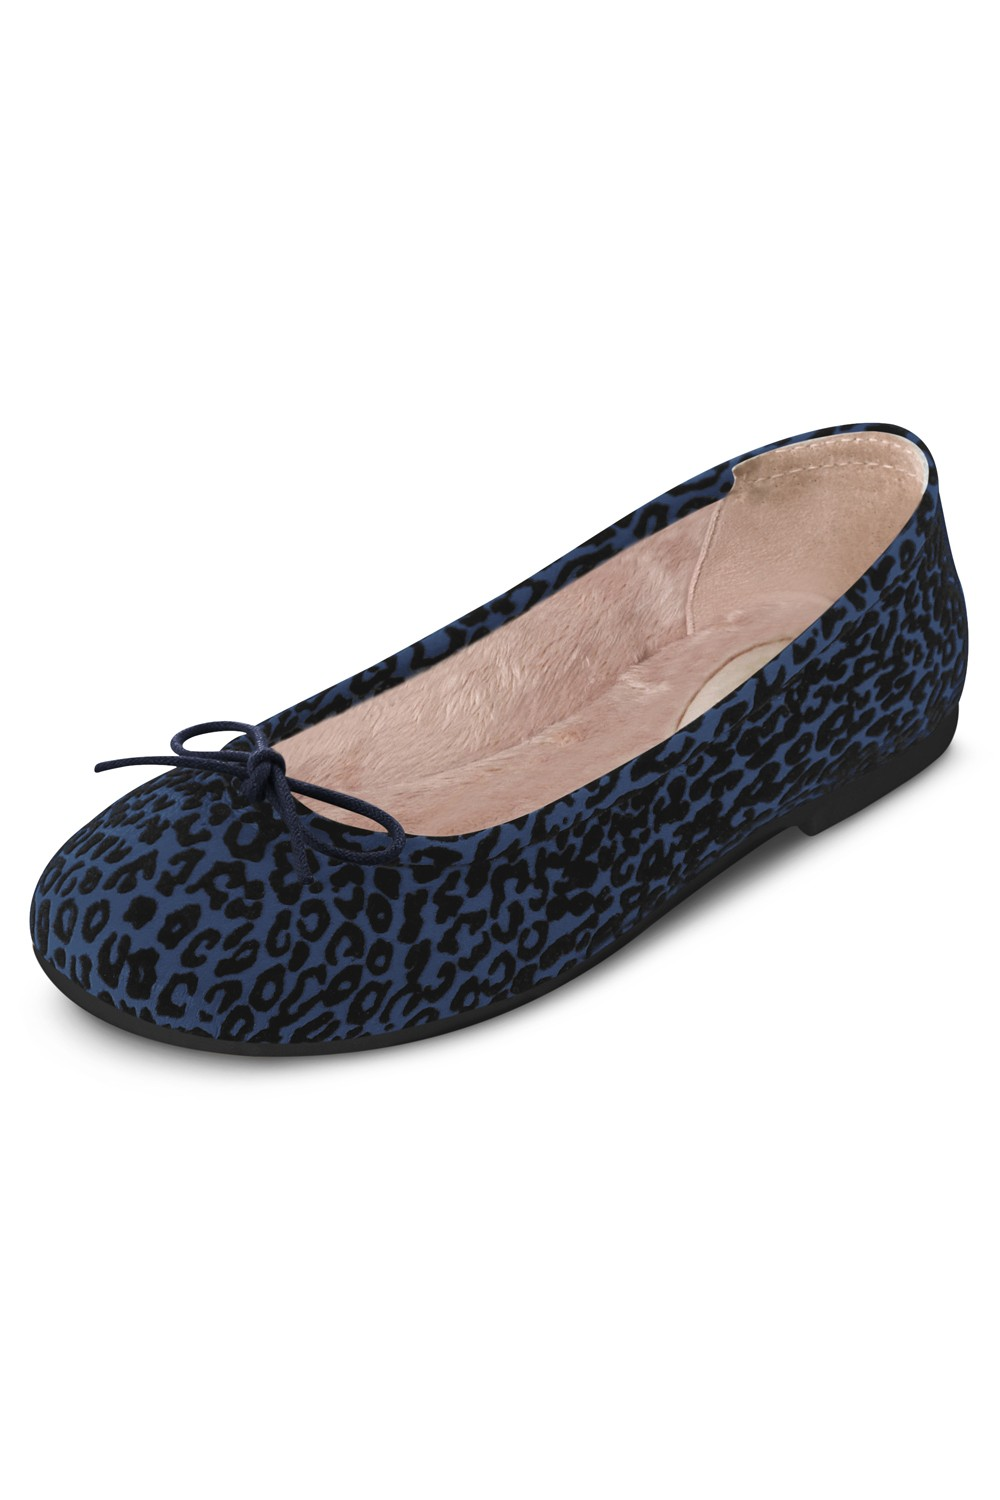 Arabella Leopard - Fur Lining Tween Girls Fashion Shoes